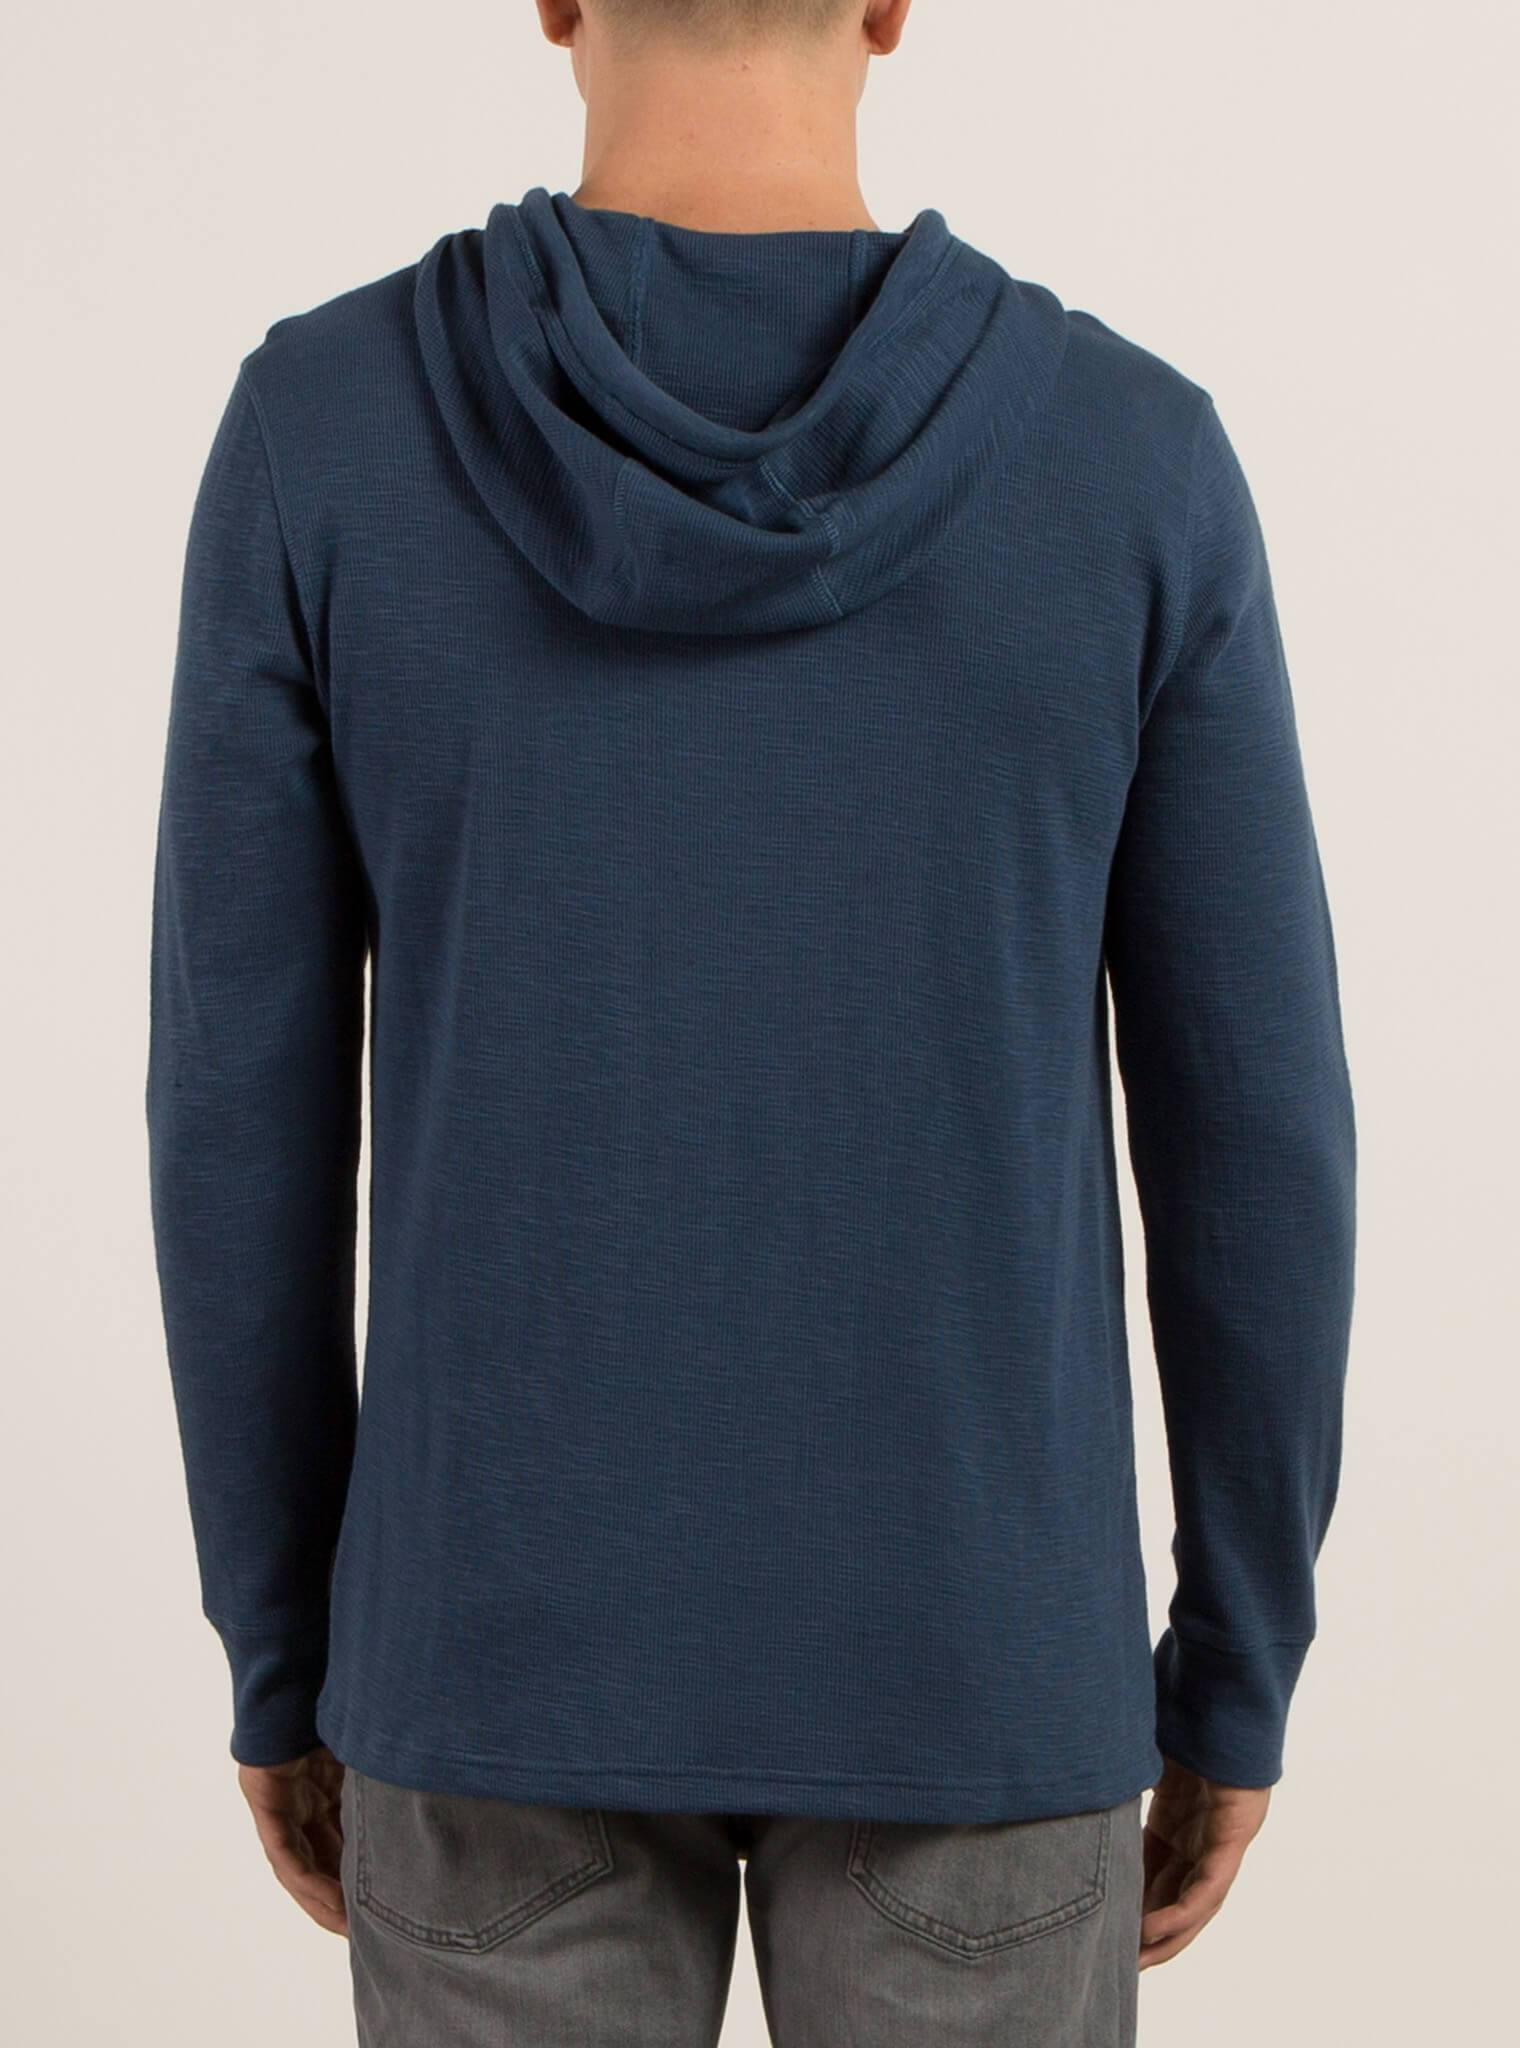 Nouveau Volcom Violet Bleu Turquoise Shirt Sweat à Capuche Pull-over Henley Thermal Small S